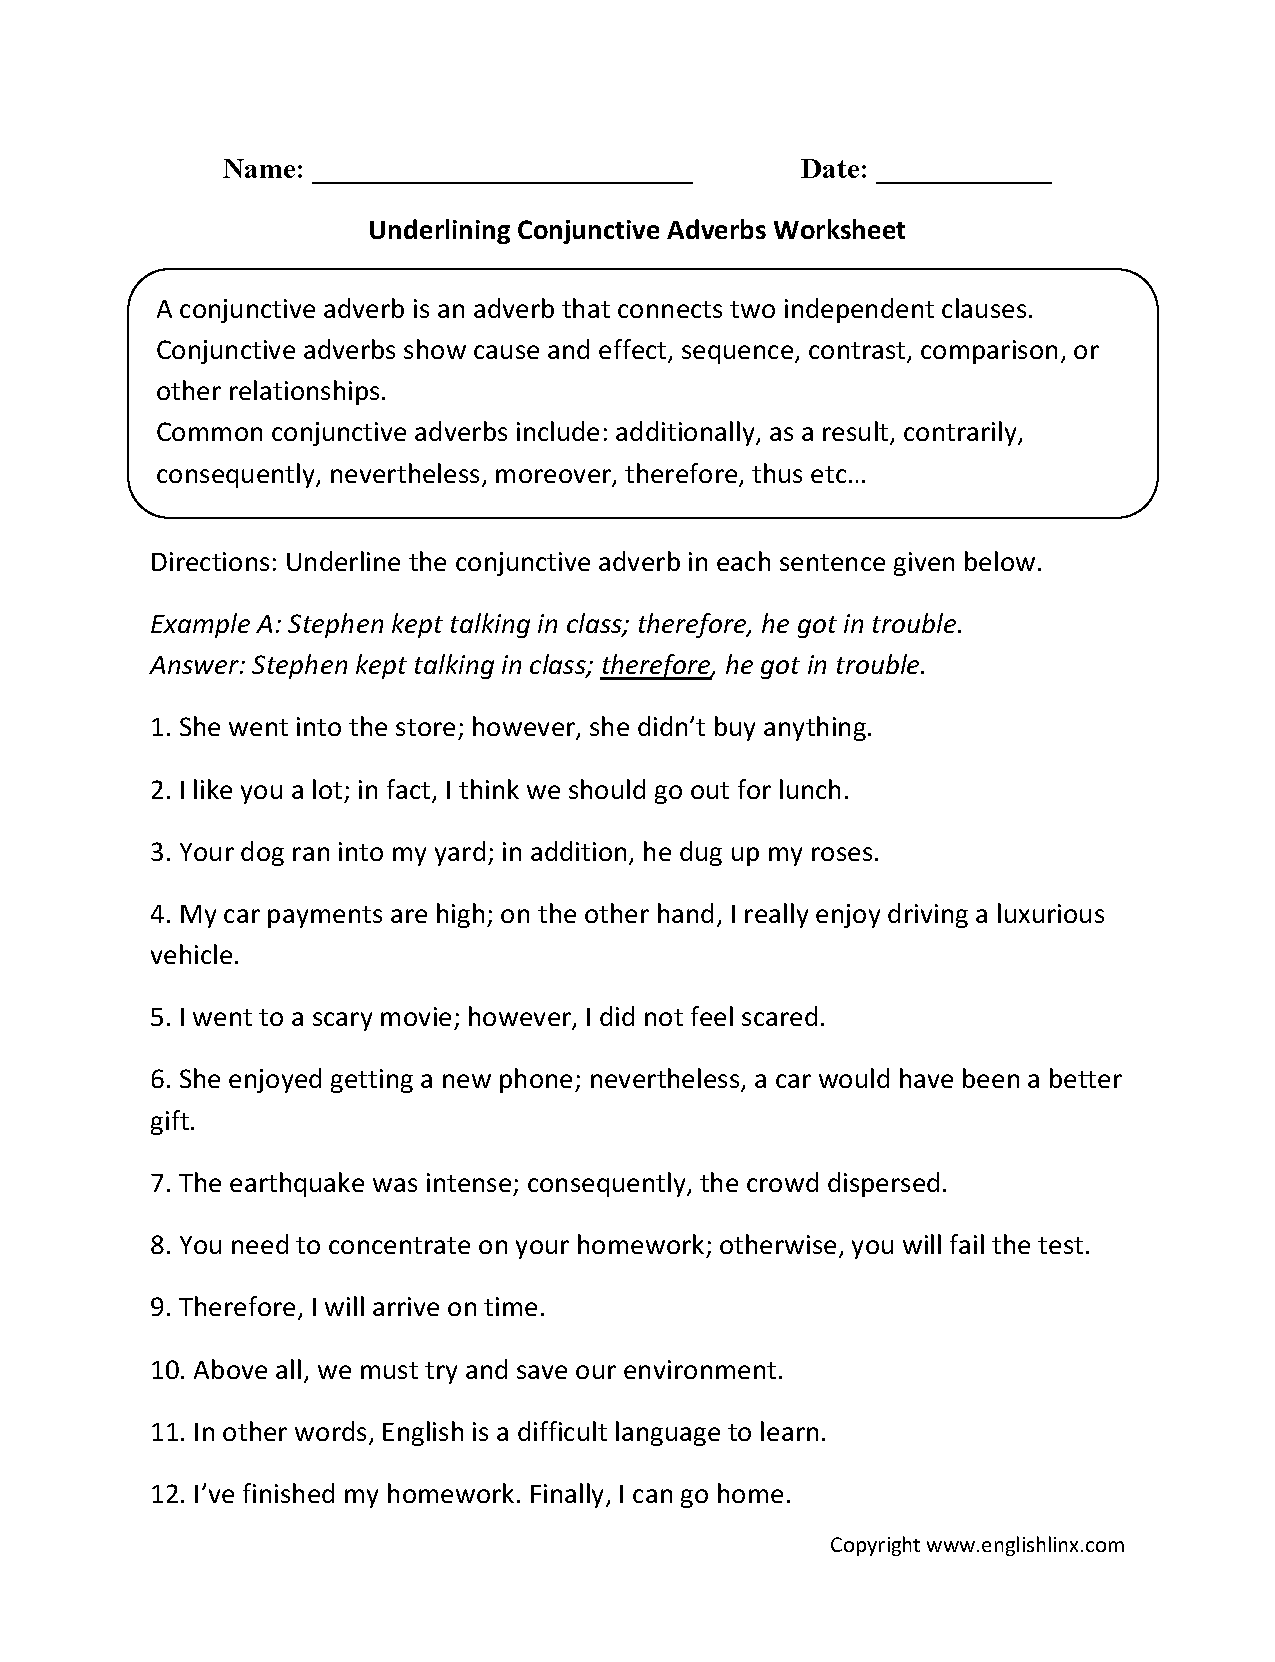 Weirdmailus  Wonderful Englishlinxcom  Conjunctions Worksheets With Exquisite Worksheet With Agreeable Periodic Table Worksheet Where Are The Most Active Metals Located Also Verb Tenses Worksheet Ks In Addition Teaching Transparency Worksheet The Activity Series Answers And Combining Like Terms Worksheet Th Grade As Well As Th Grade Math Slope Worksheet Additionally Multiples Of  Worksheet From Englishlinxcom With Weirdmailus  Exquisite Englishlinxcom  Conjunctions Worksheets With Agreeable Worksheet And Wonderful Periodic Table Worksheet Where Are The Most Active Metals Located Also Verb Tenses Worksheet Ks In Addition Teaching Transparency Worksheet The Activity Series Answers From Englishlinxcom